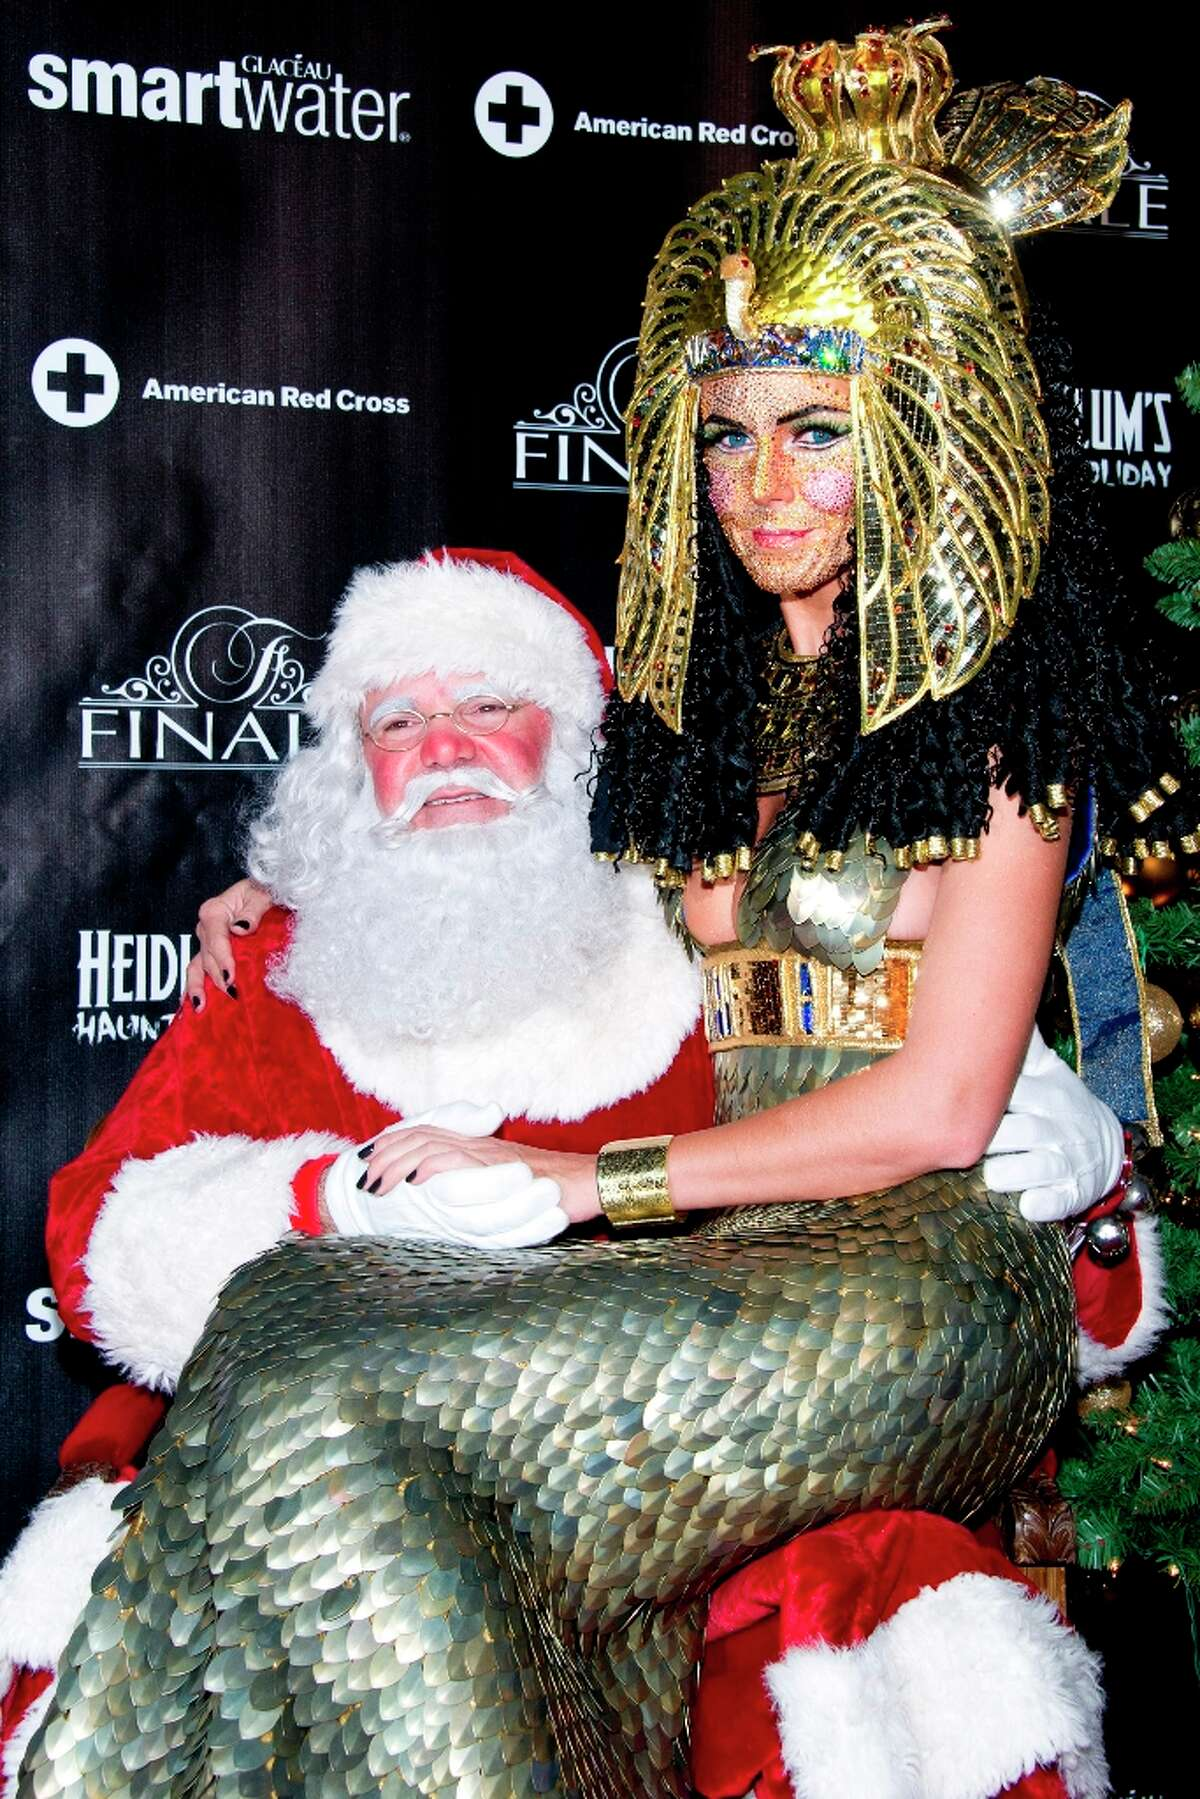 Heidi Klum, dressed as Cleopatra, poses with Santa Claus during her Haunted Holiday Party benefiting Superstorm Sandy relief efforts, on Saturday, Dec. 1, 2012 in New York.